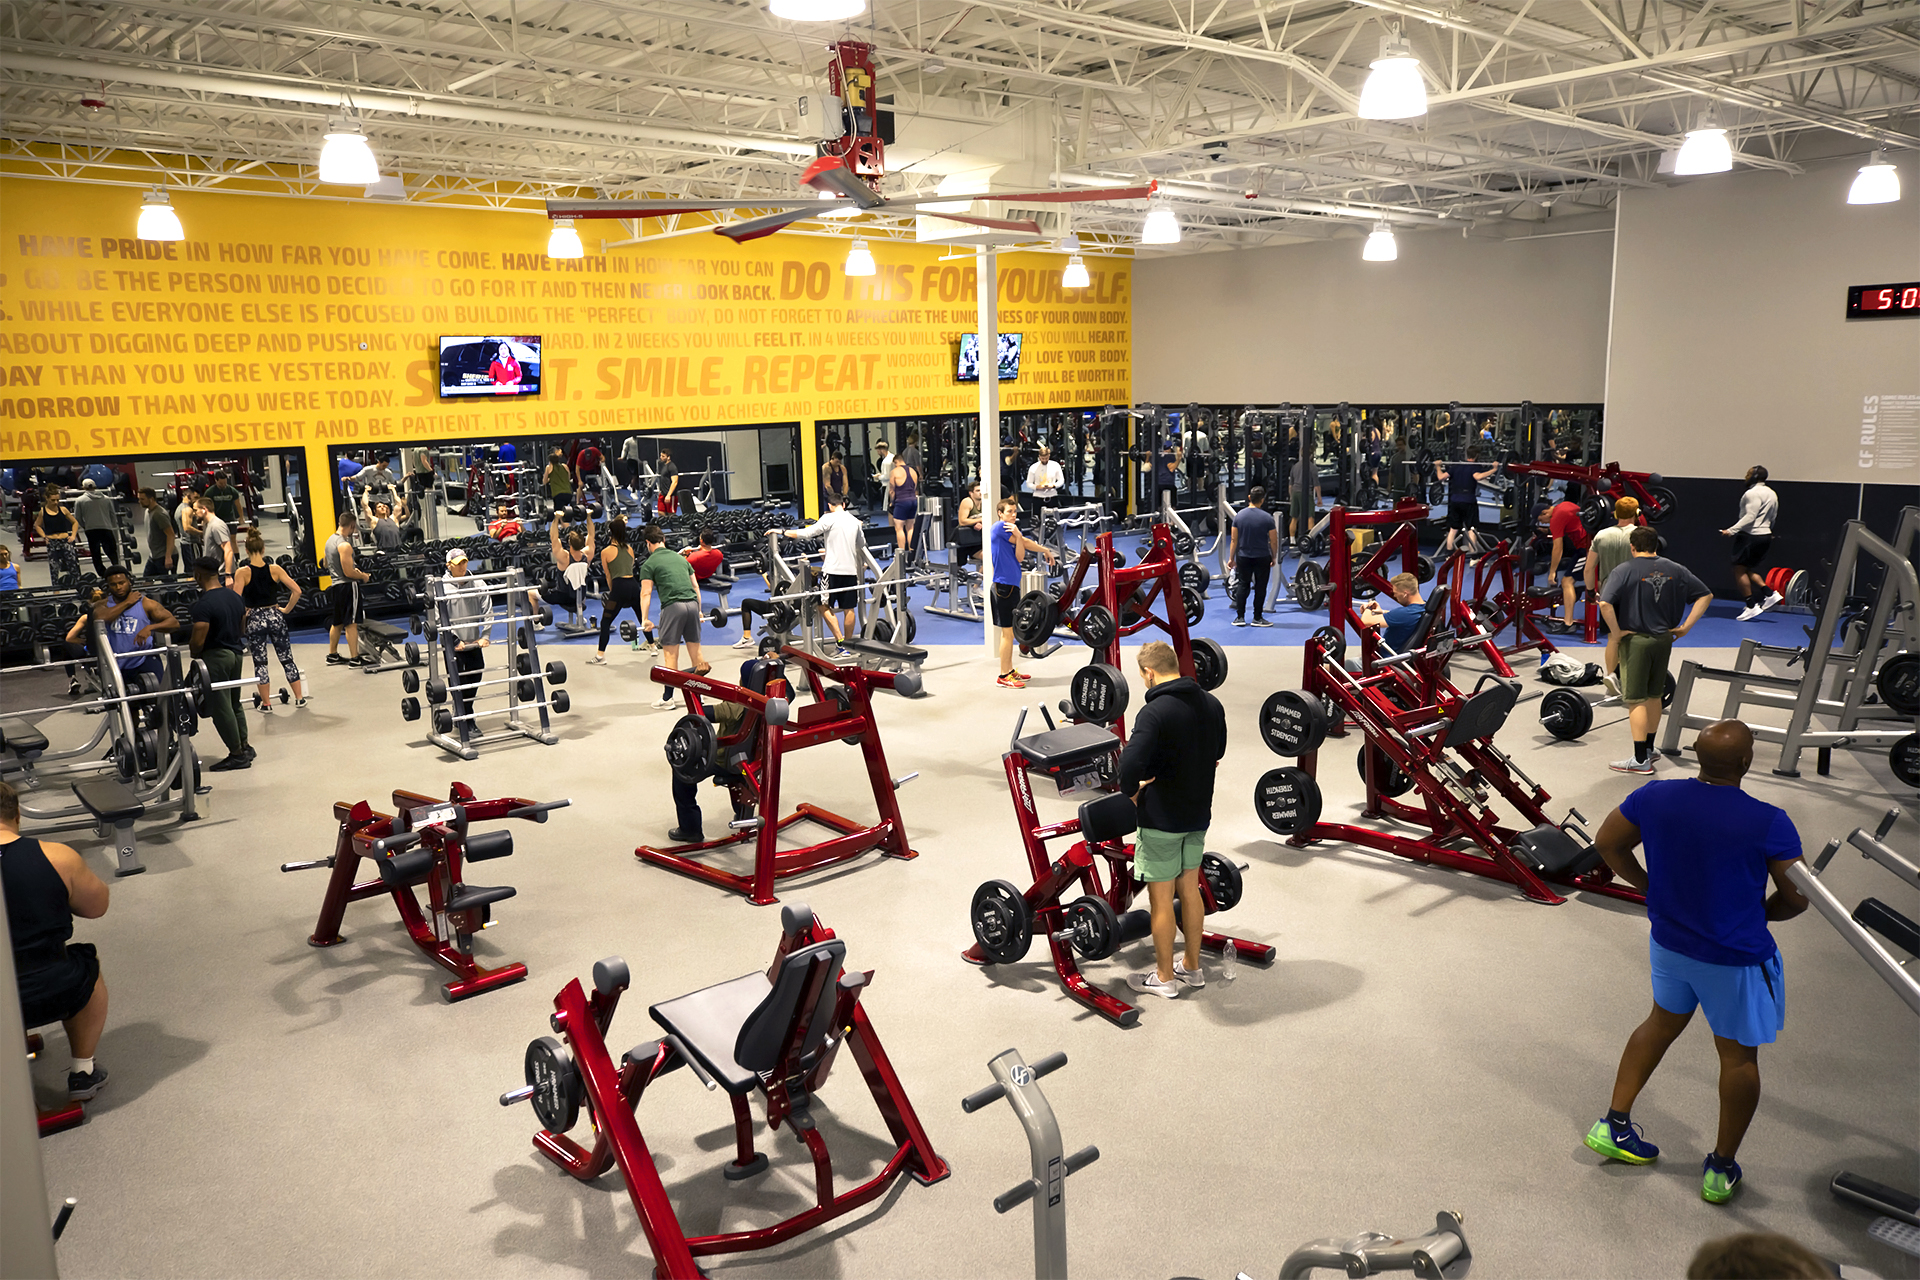 Free weights and machines at Club Fitness